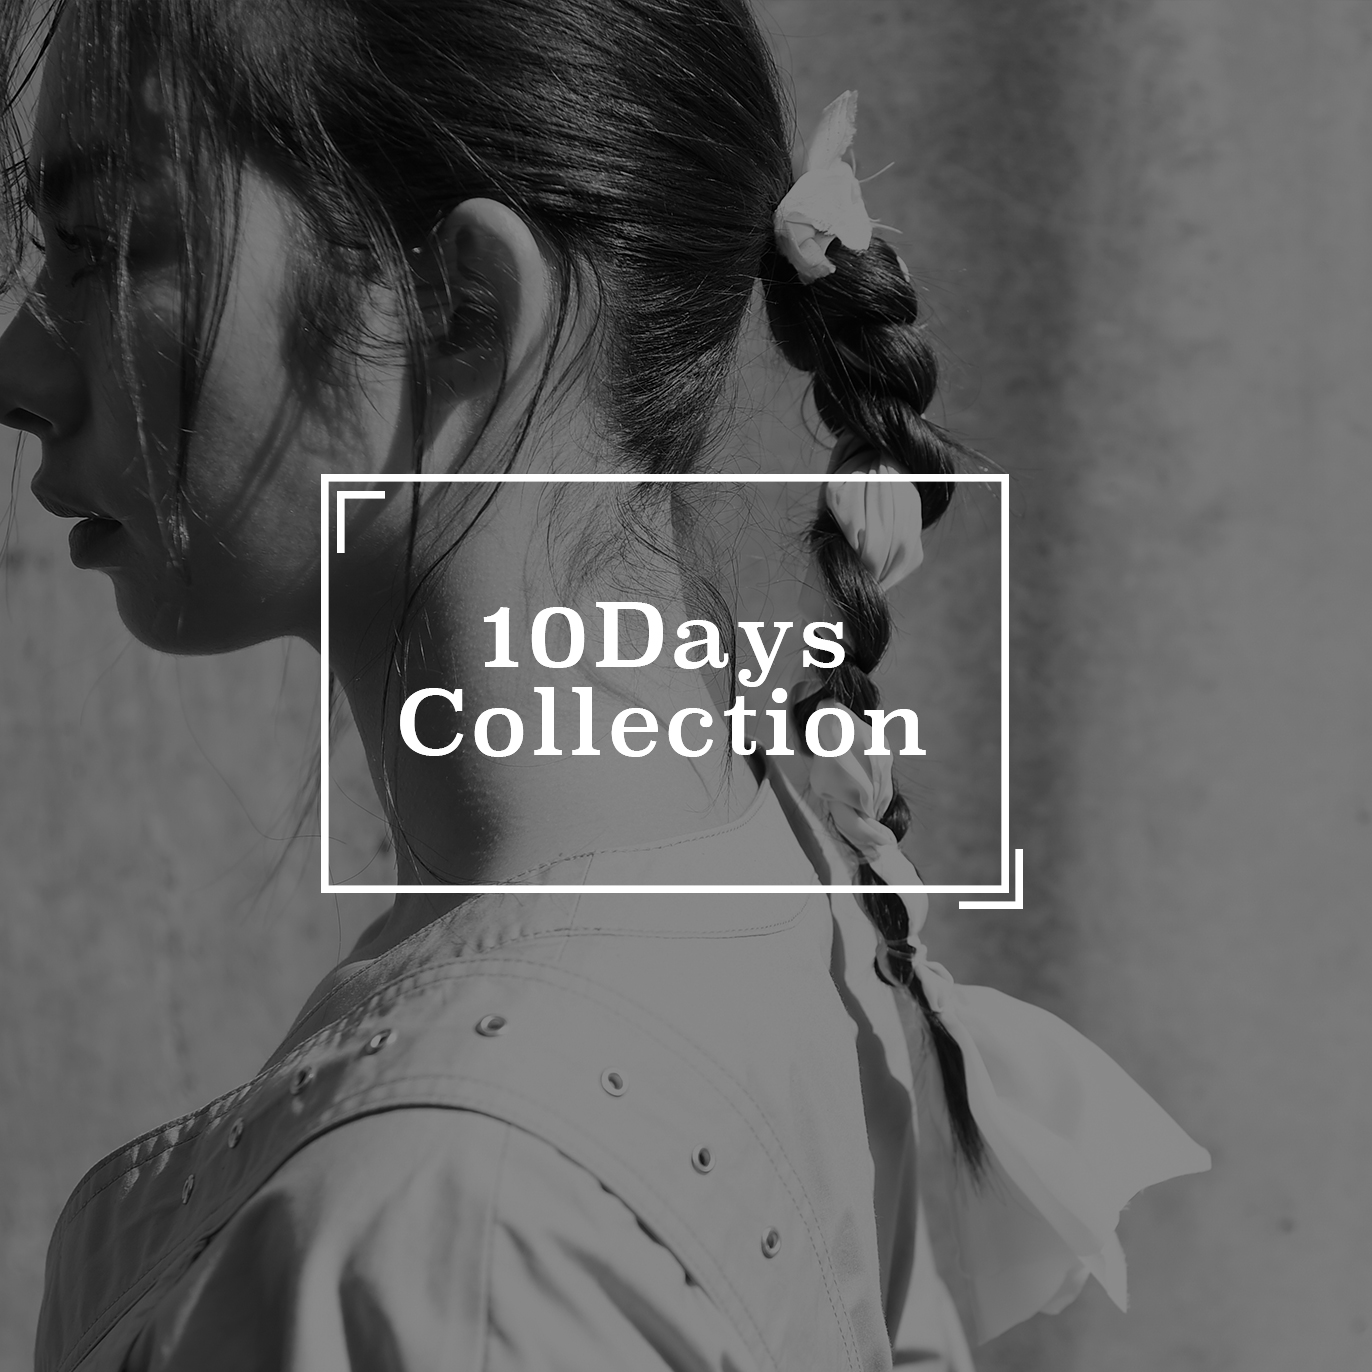 『10Days Collection』Starting